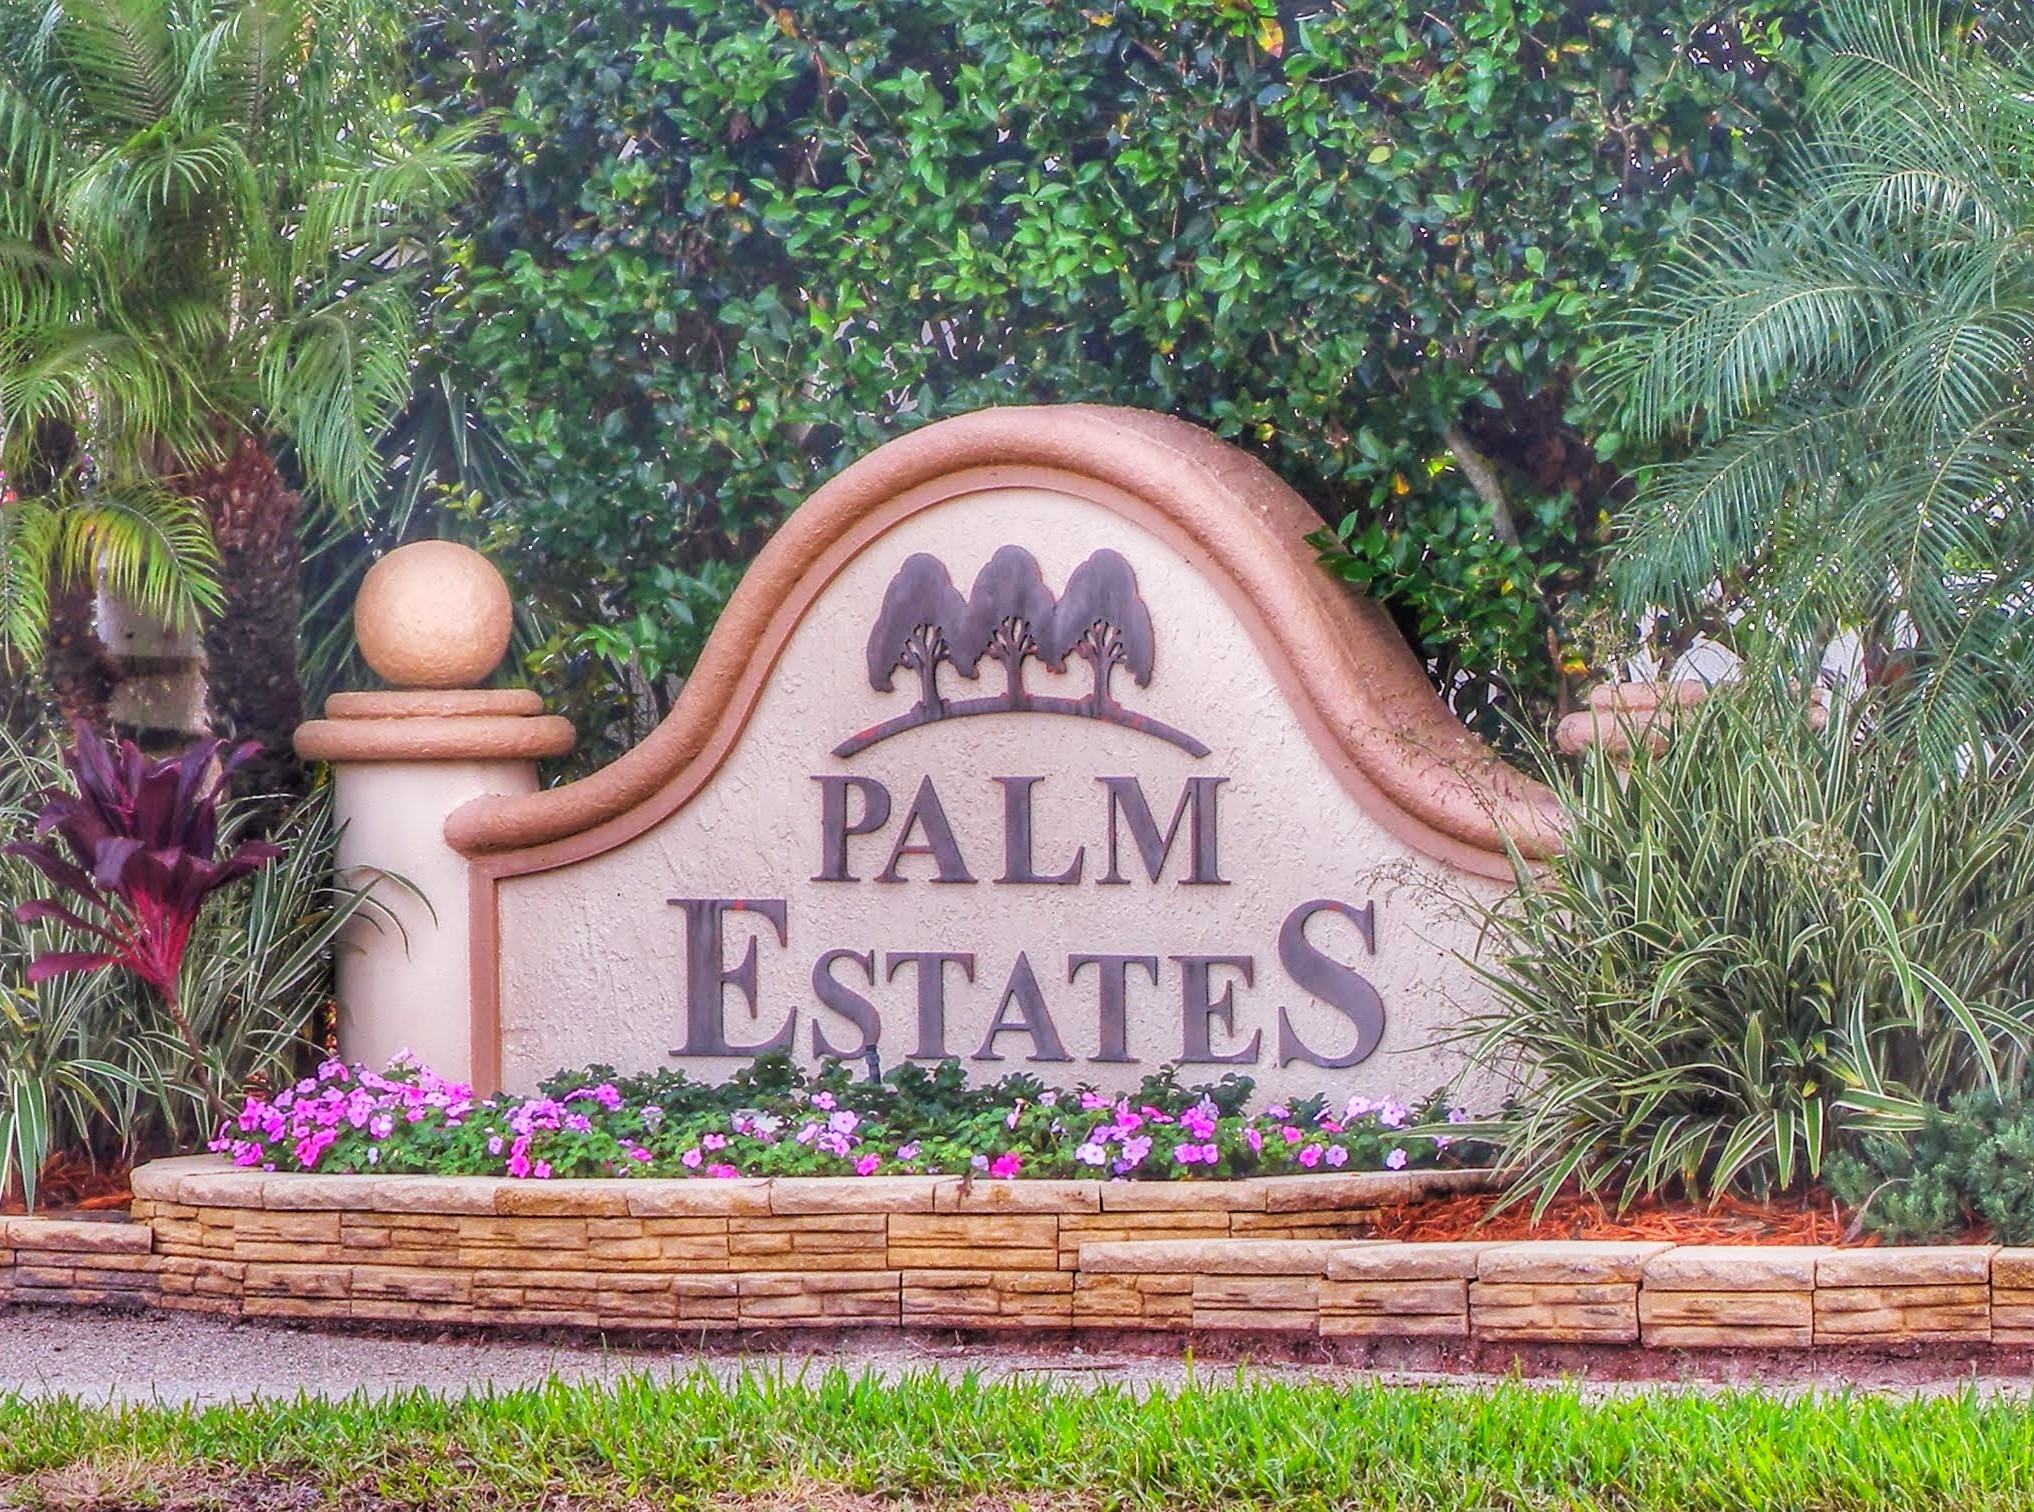 Royal Palm Beach FL Madison Green Palm Estates Homes For Sale